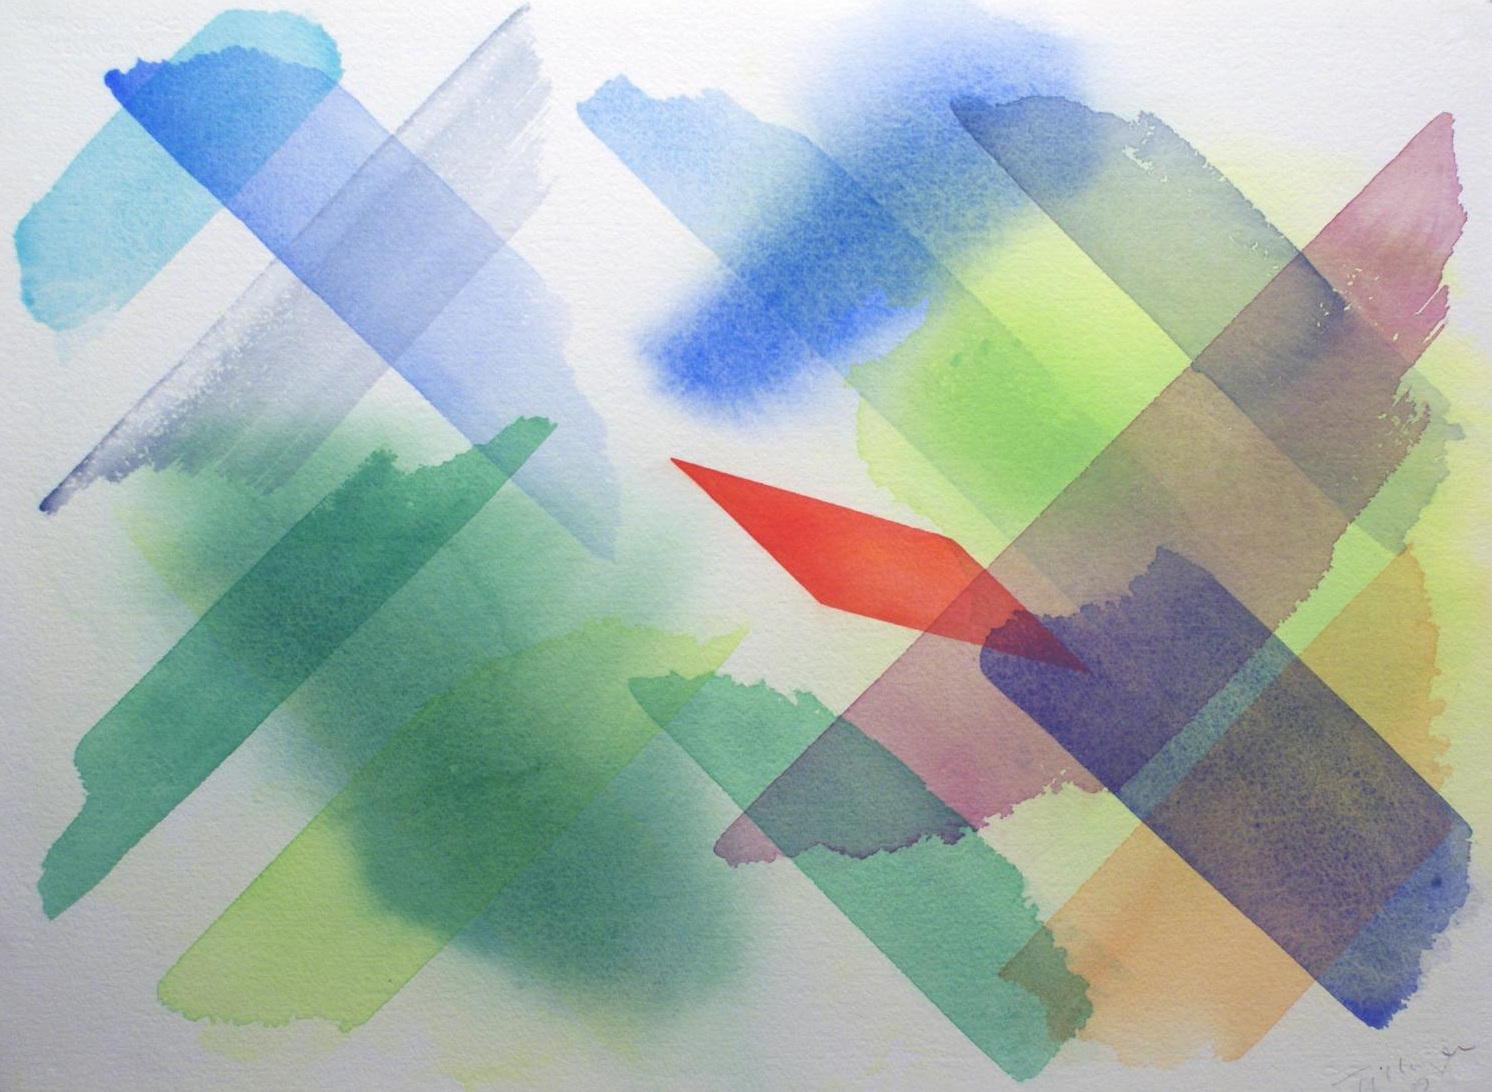 William Tillyer,  Remember that Primitive Cottage Feeling 4 , 2009, Watercolour on paper, 57.2 x 76.2 cms, (22 1/2 x 30 ins)